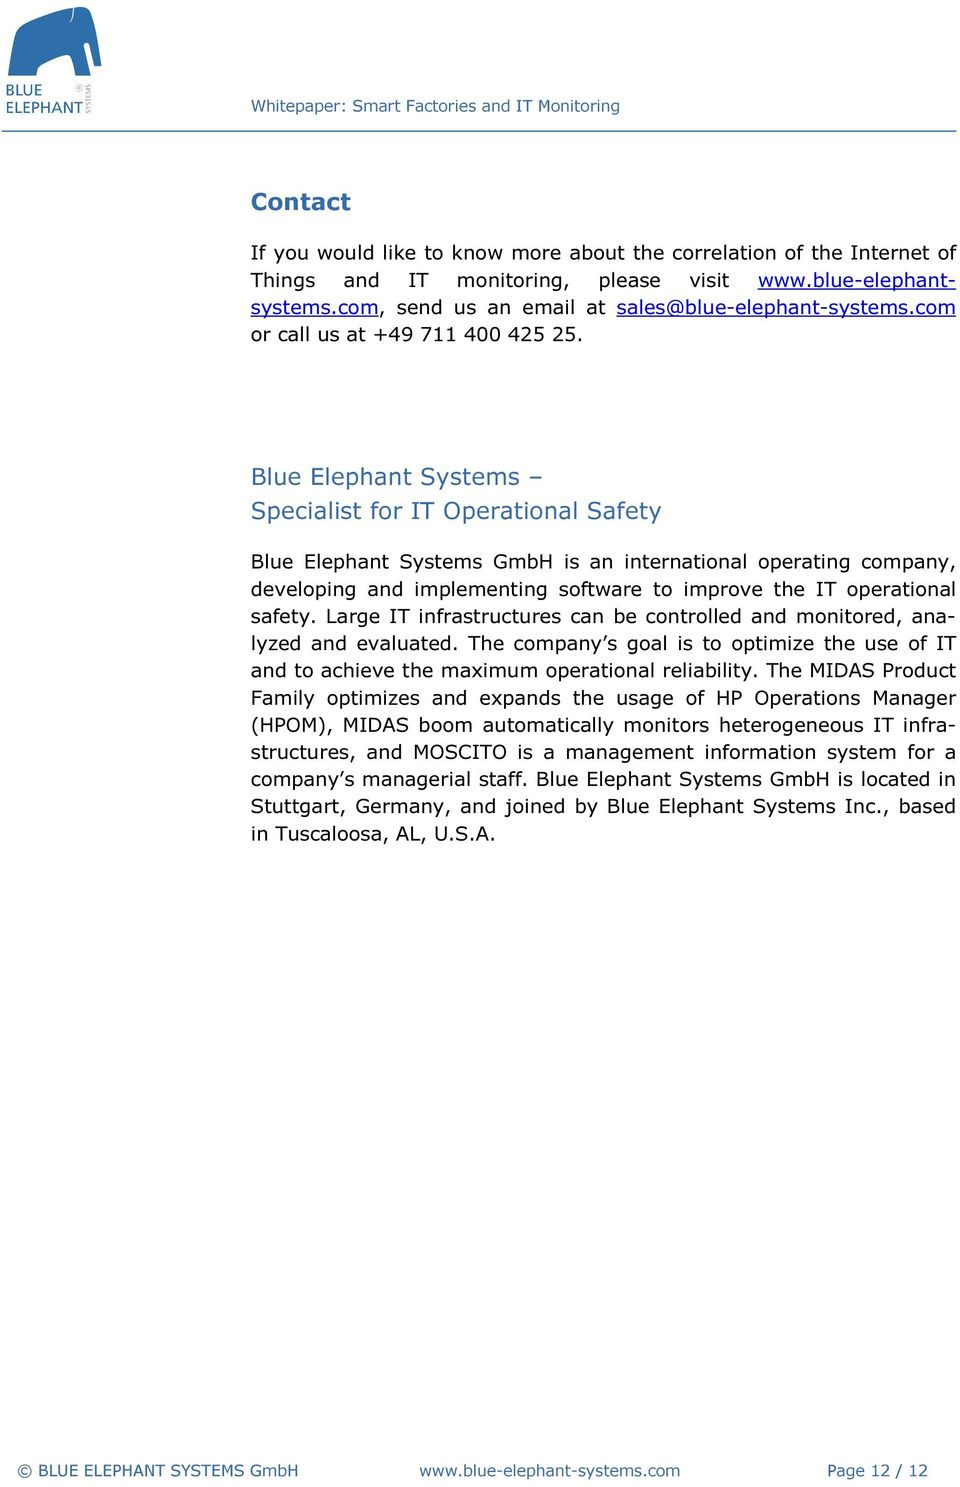 Blue Elephant Systems Specialist for IT Operational Safety Blue Elephant Systems GmbH is an international operating company, developing and implementing software to improve the IT operational safety.